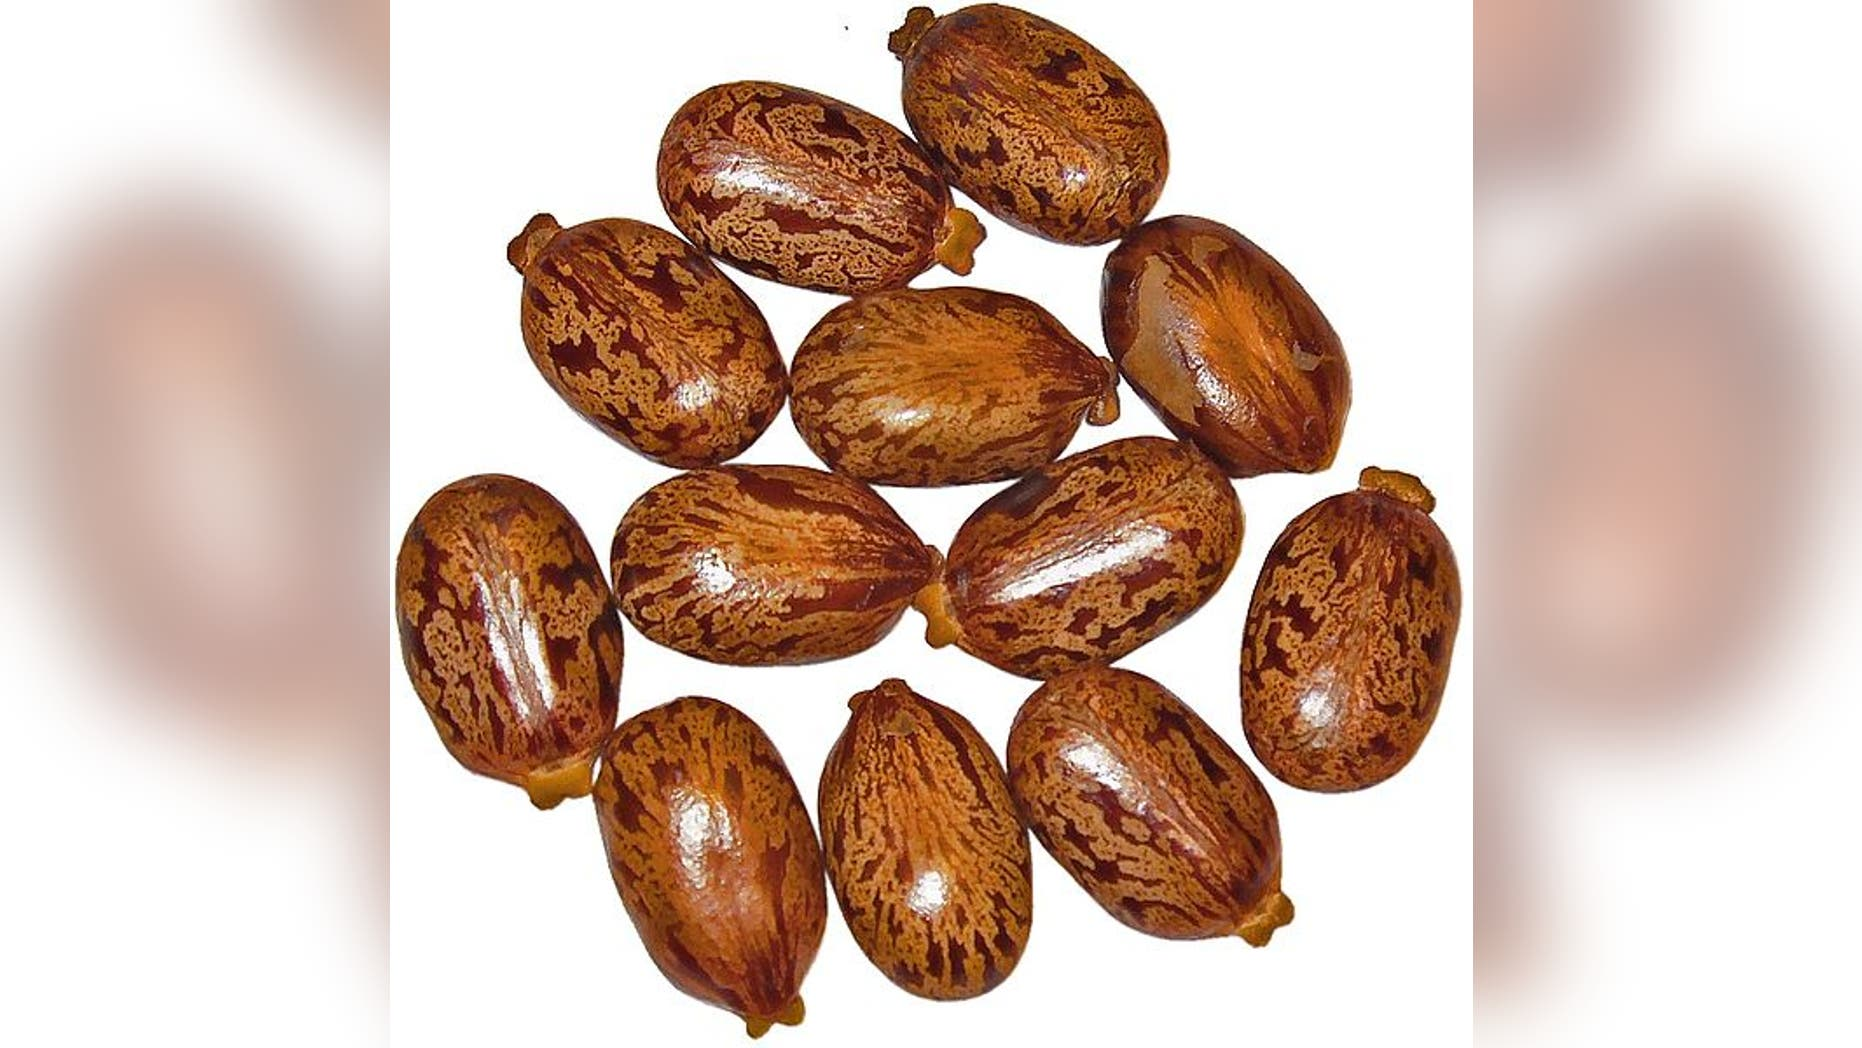 Castor beans, from which ricin is synthesized